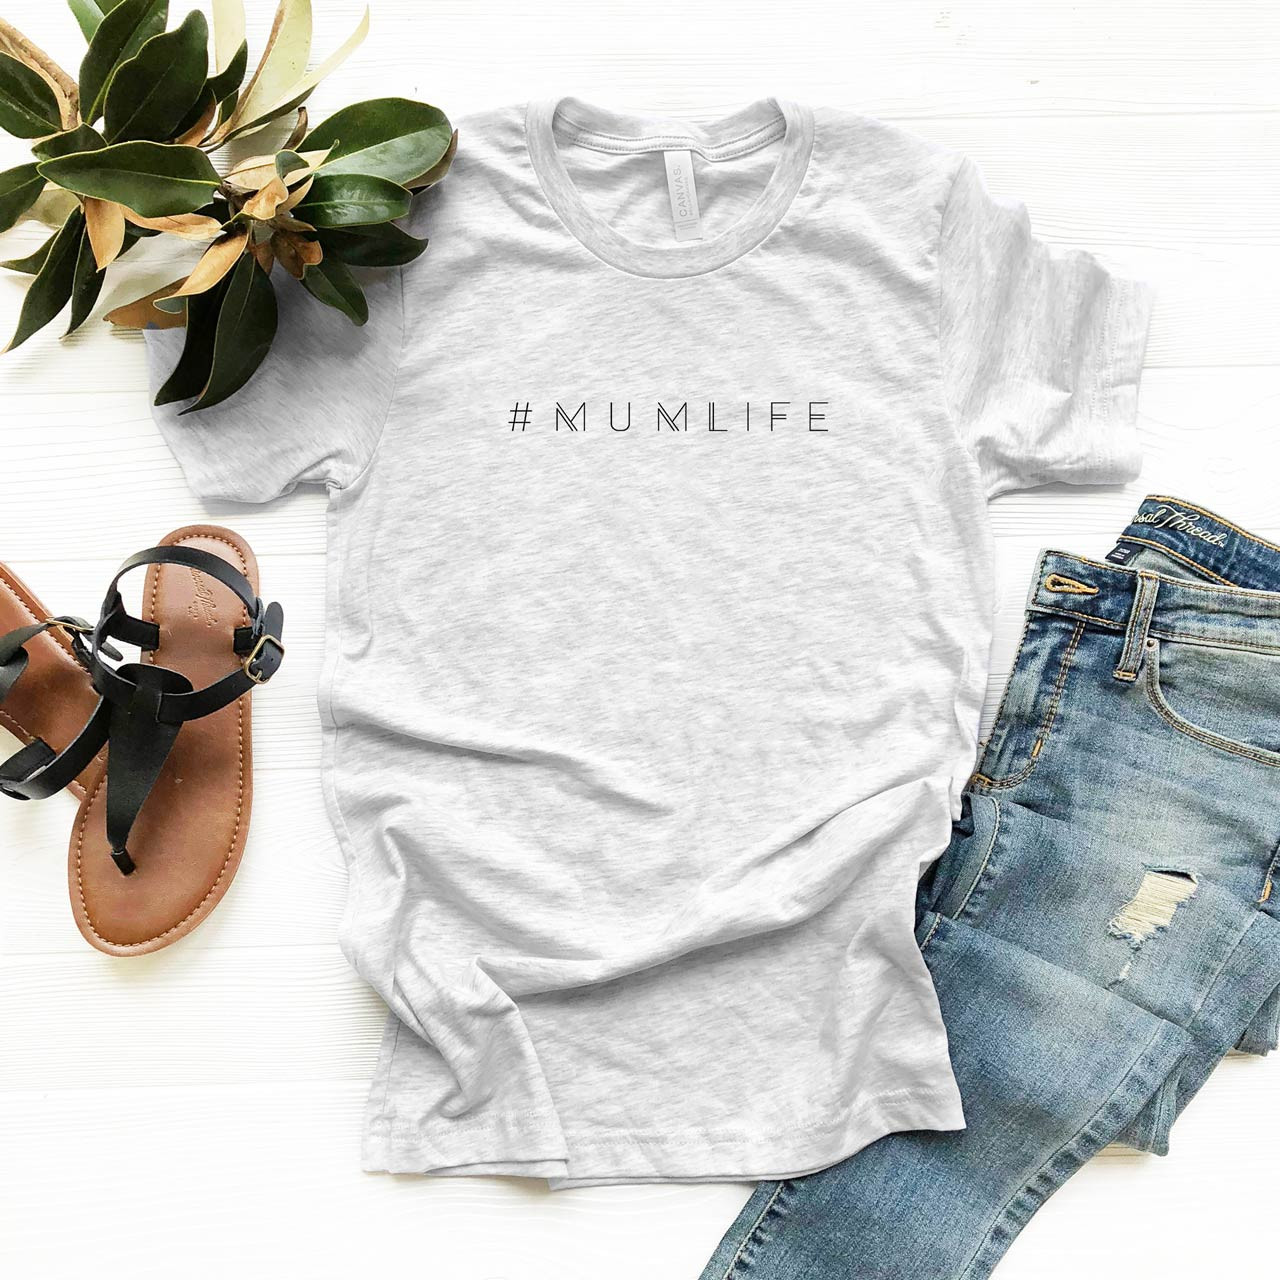 #MUMLIFE Vintage T-Shirt (Black on Light Gray Fleck) from The Printed Home